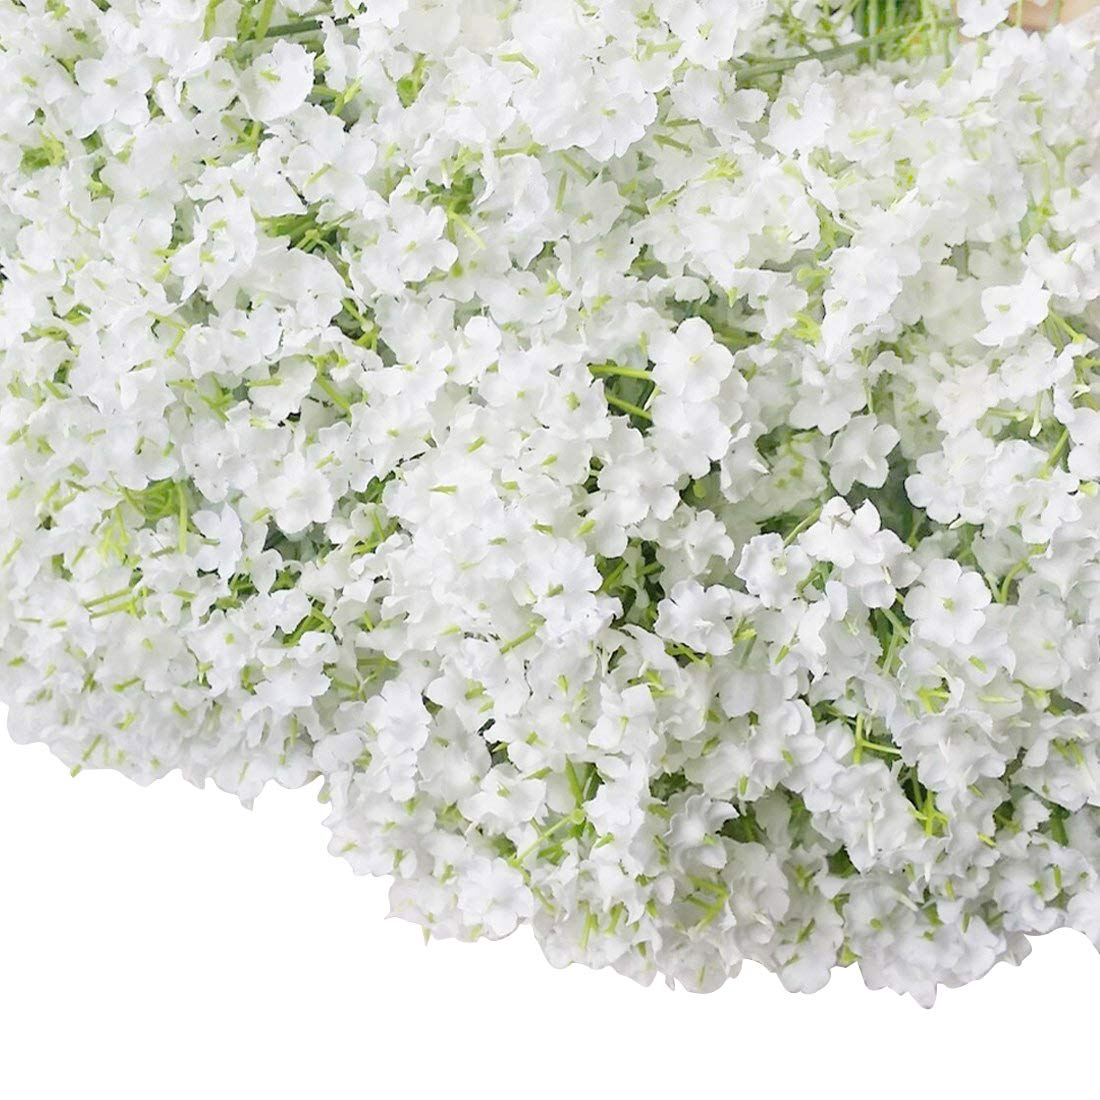 Bringsine Baby Breath/Gypsophila Wedding Decoration White Colour Real Touch Artificial Flowers 30 pieces/lot